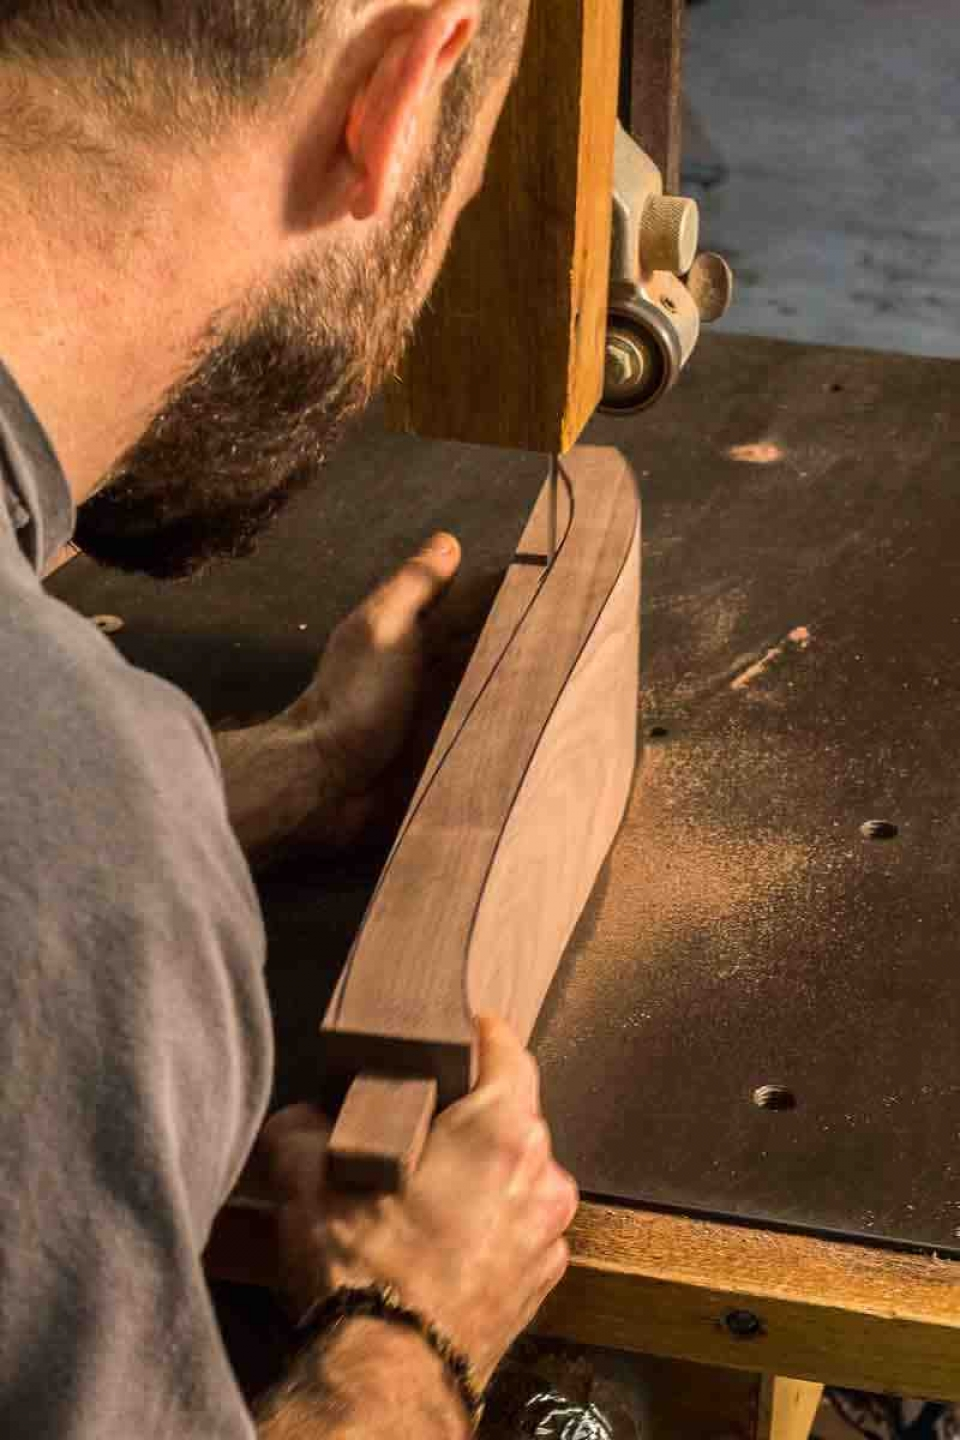 bandsawing rocking chair arm